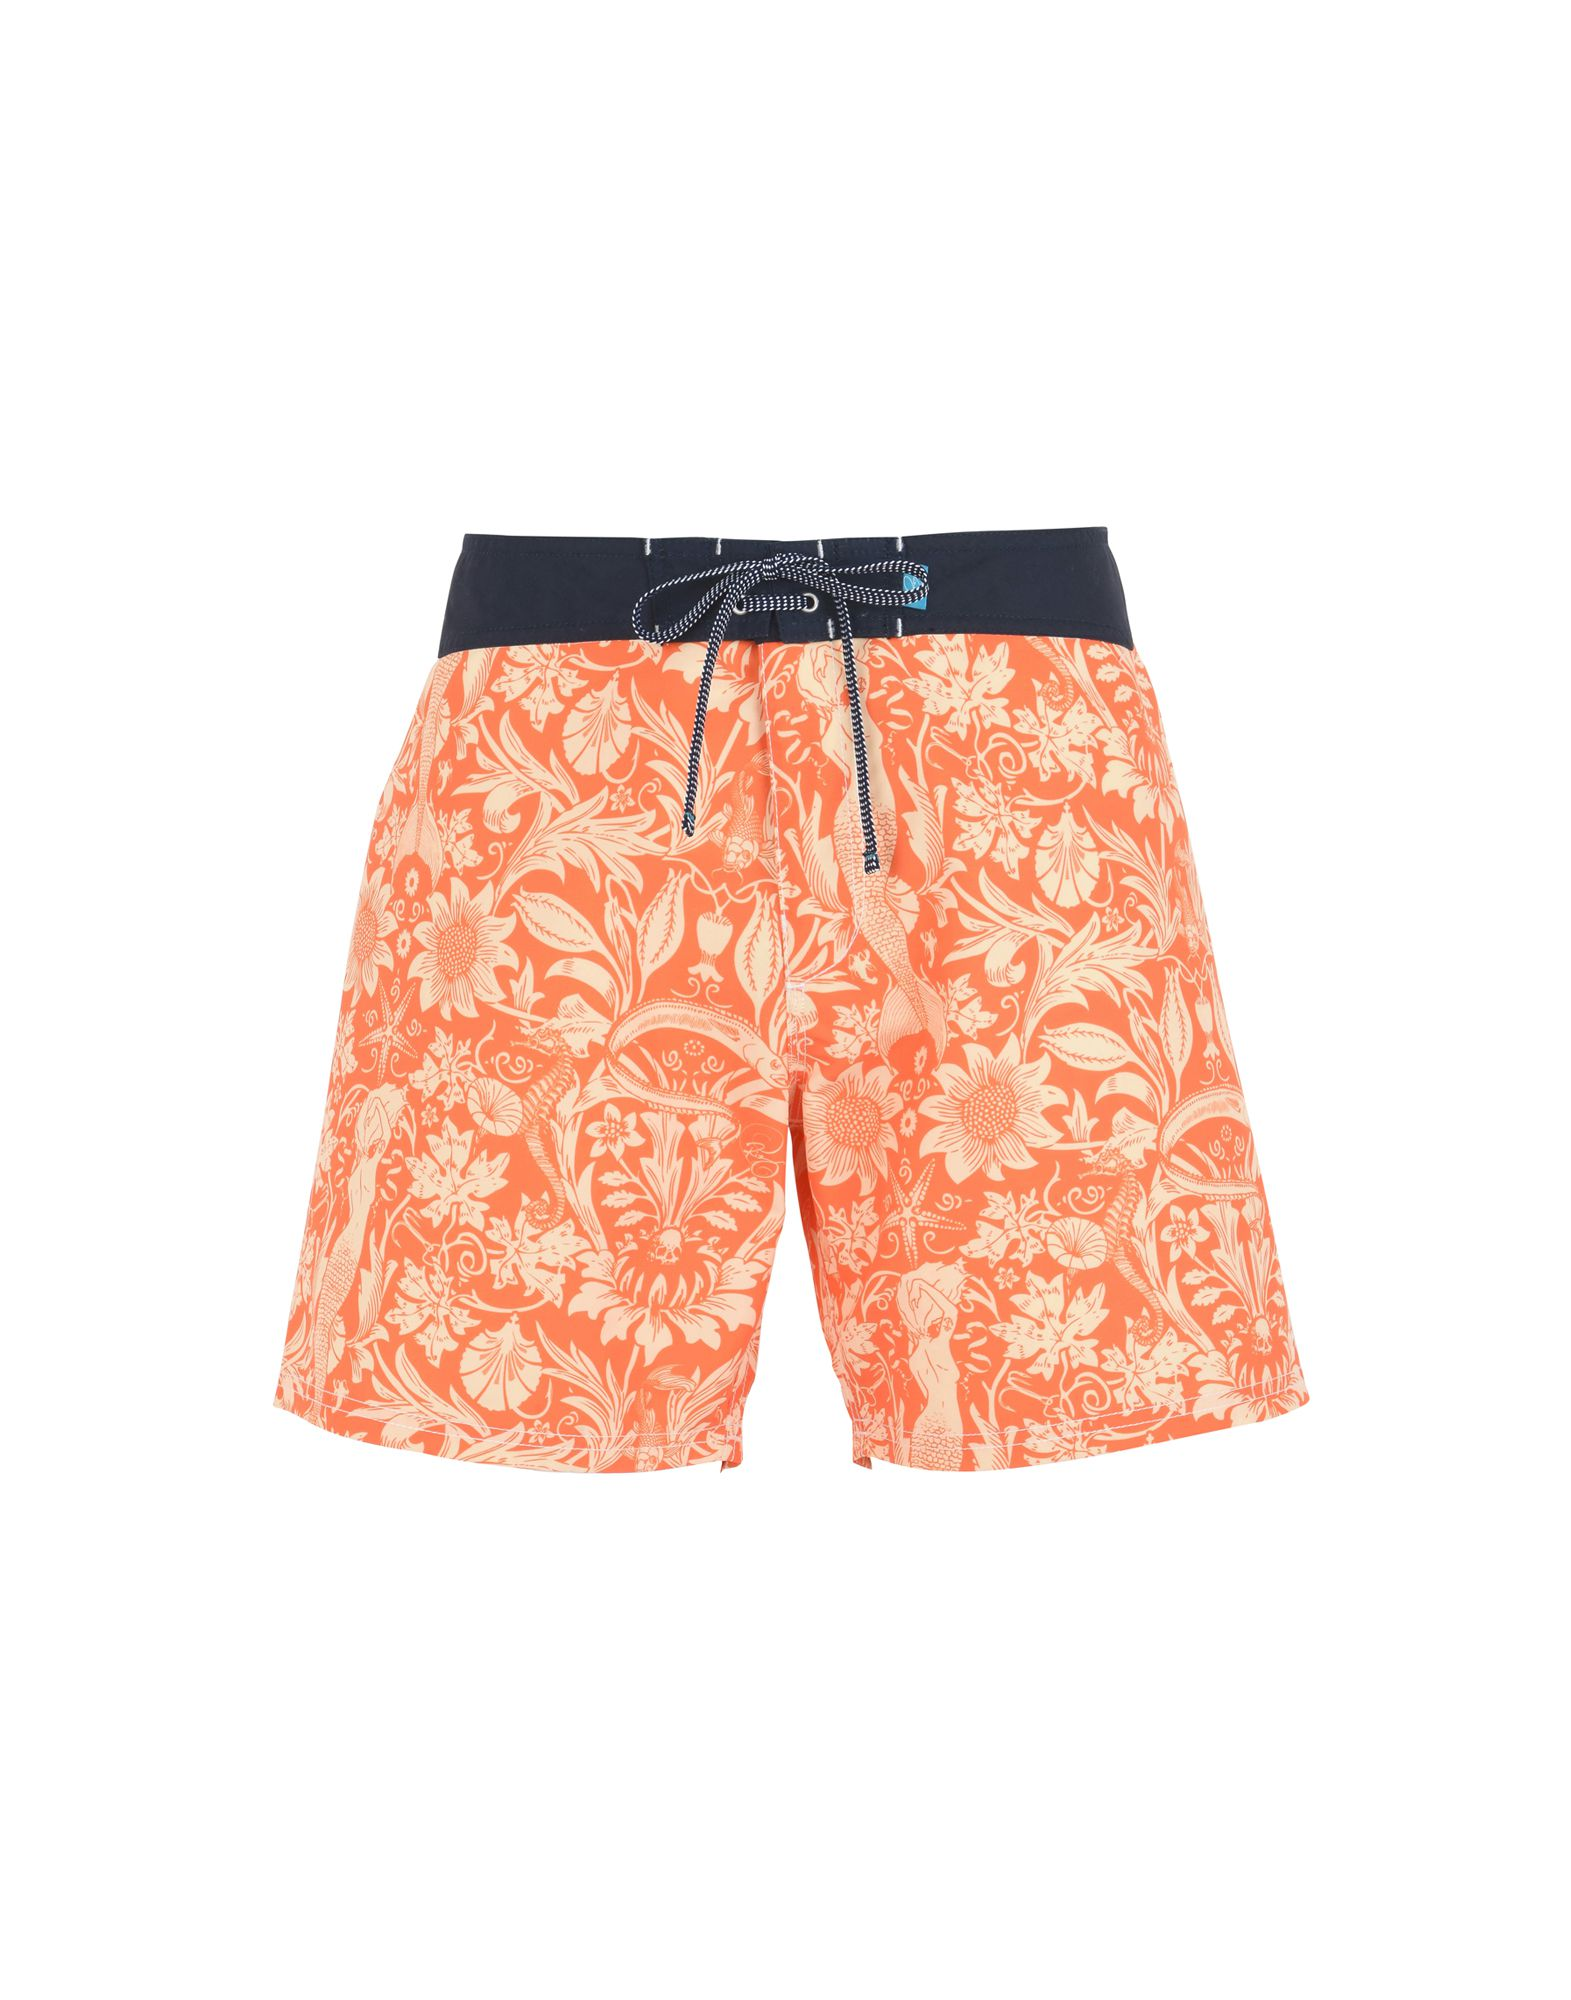 RIZ BOARDSHORTS Swim Shorts in Orange